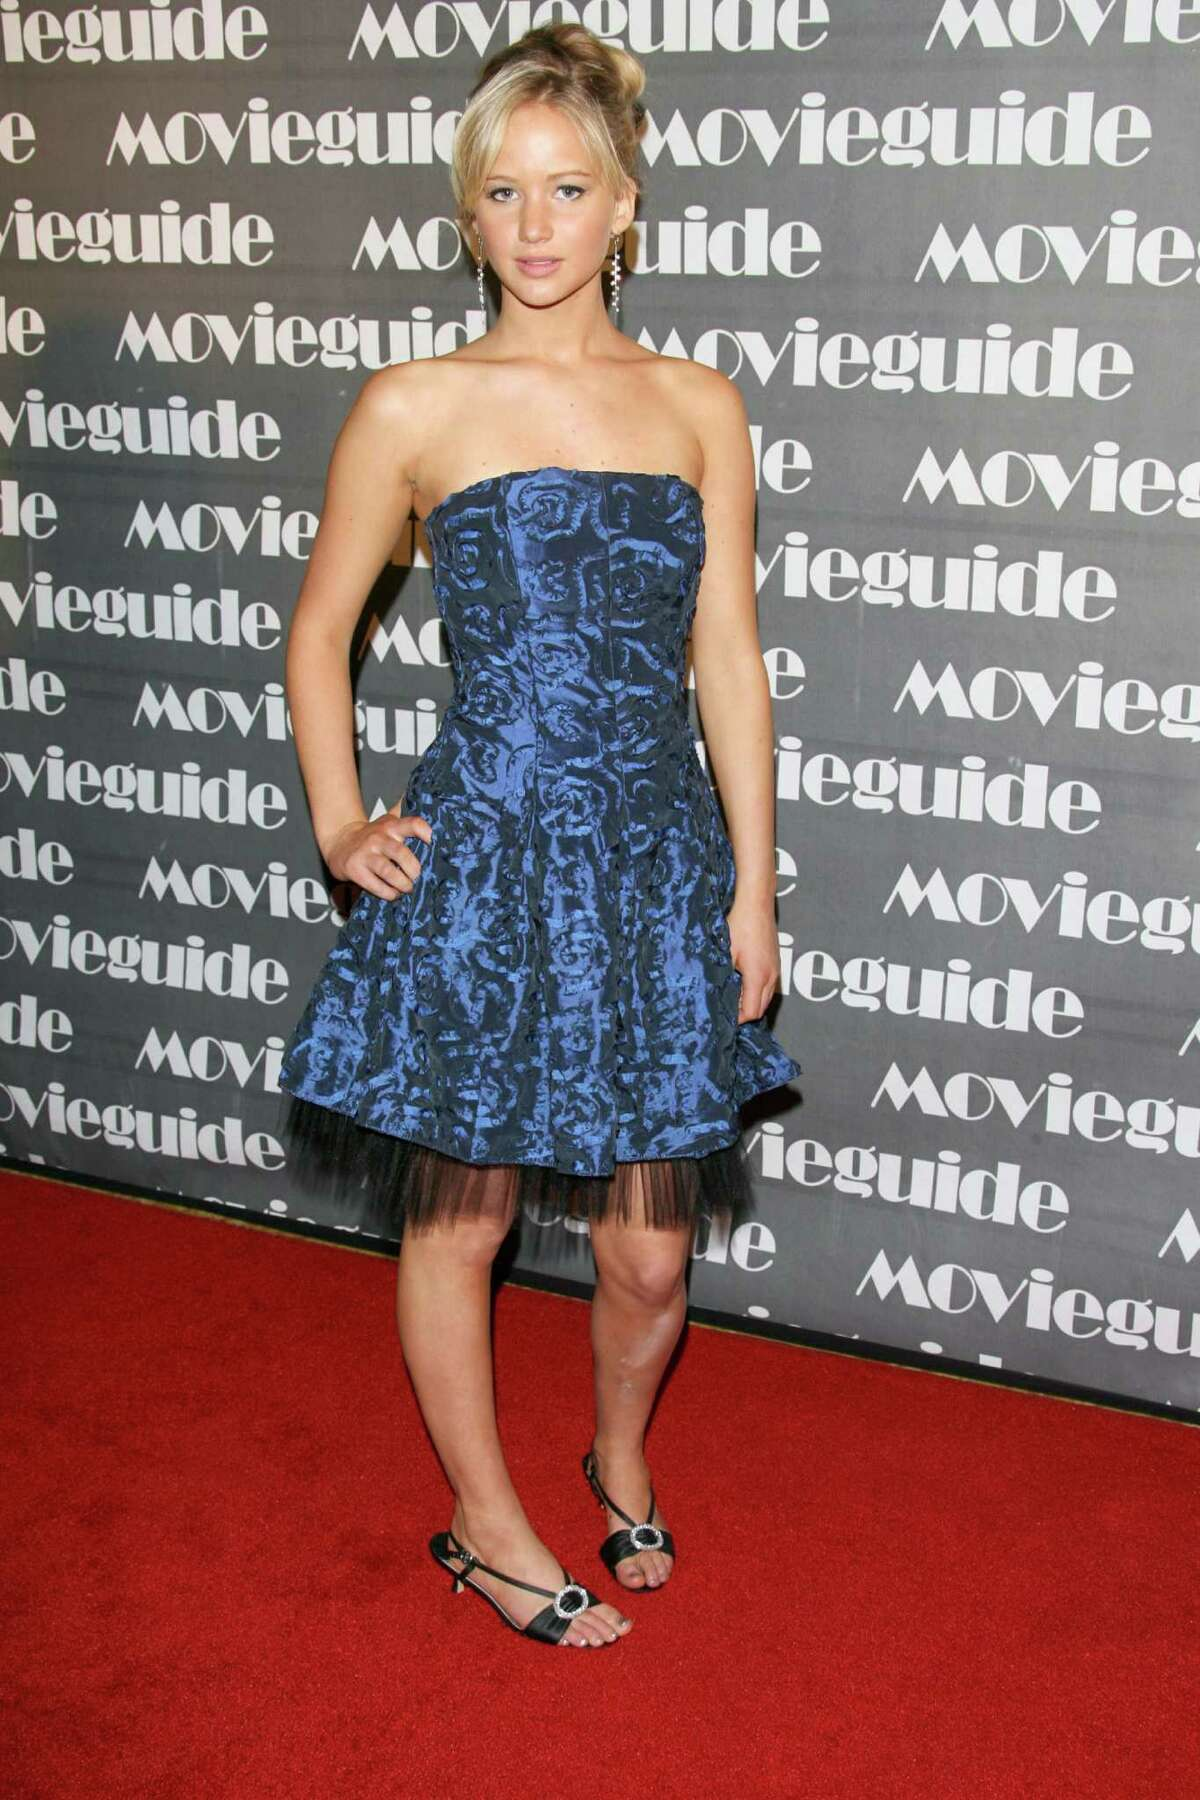 Age 16: At the 15th annual Movieguide Faith and Values Awards in Beverly Hills, Calif., Feb. 20, 2007.